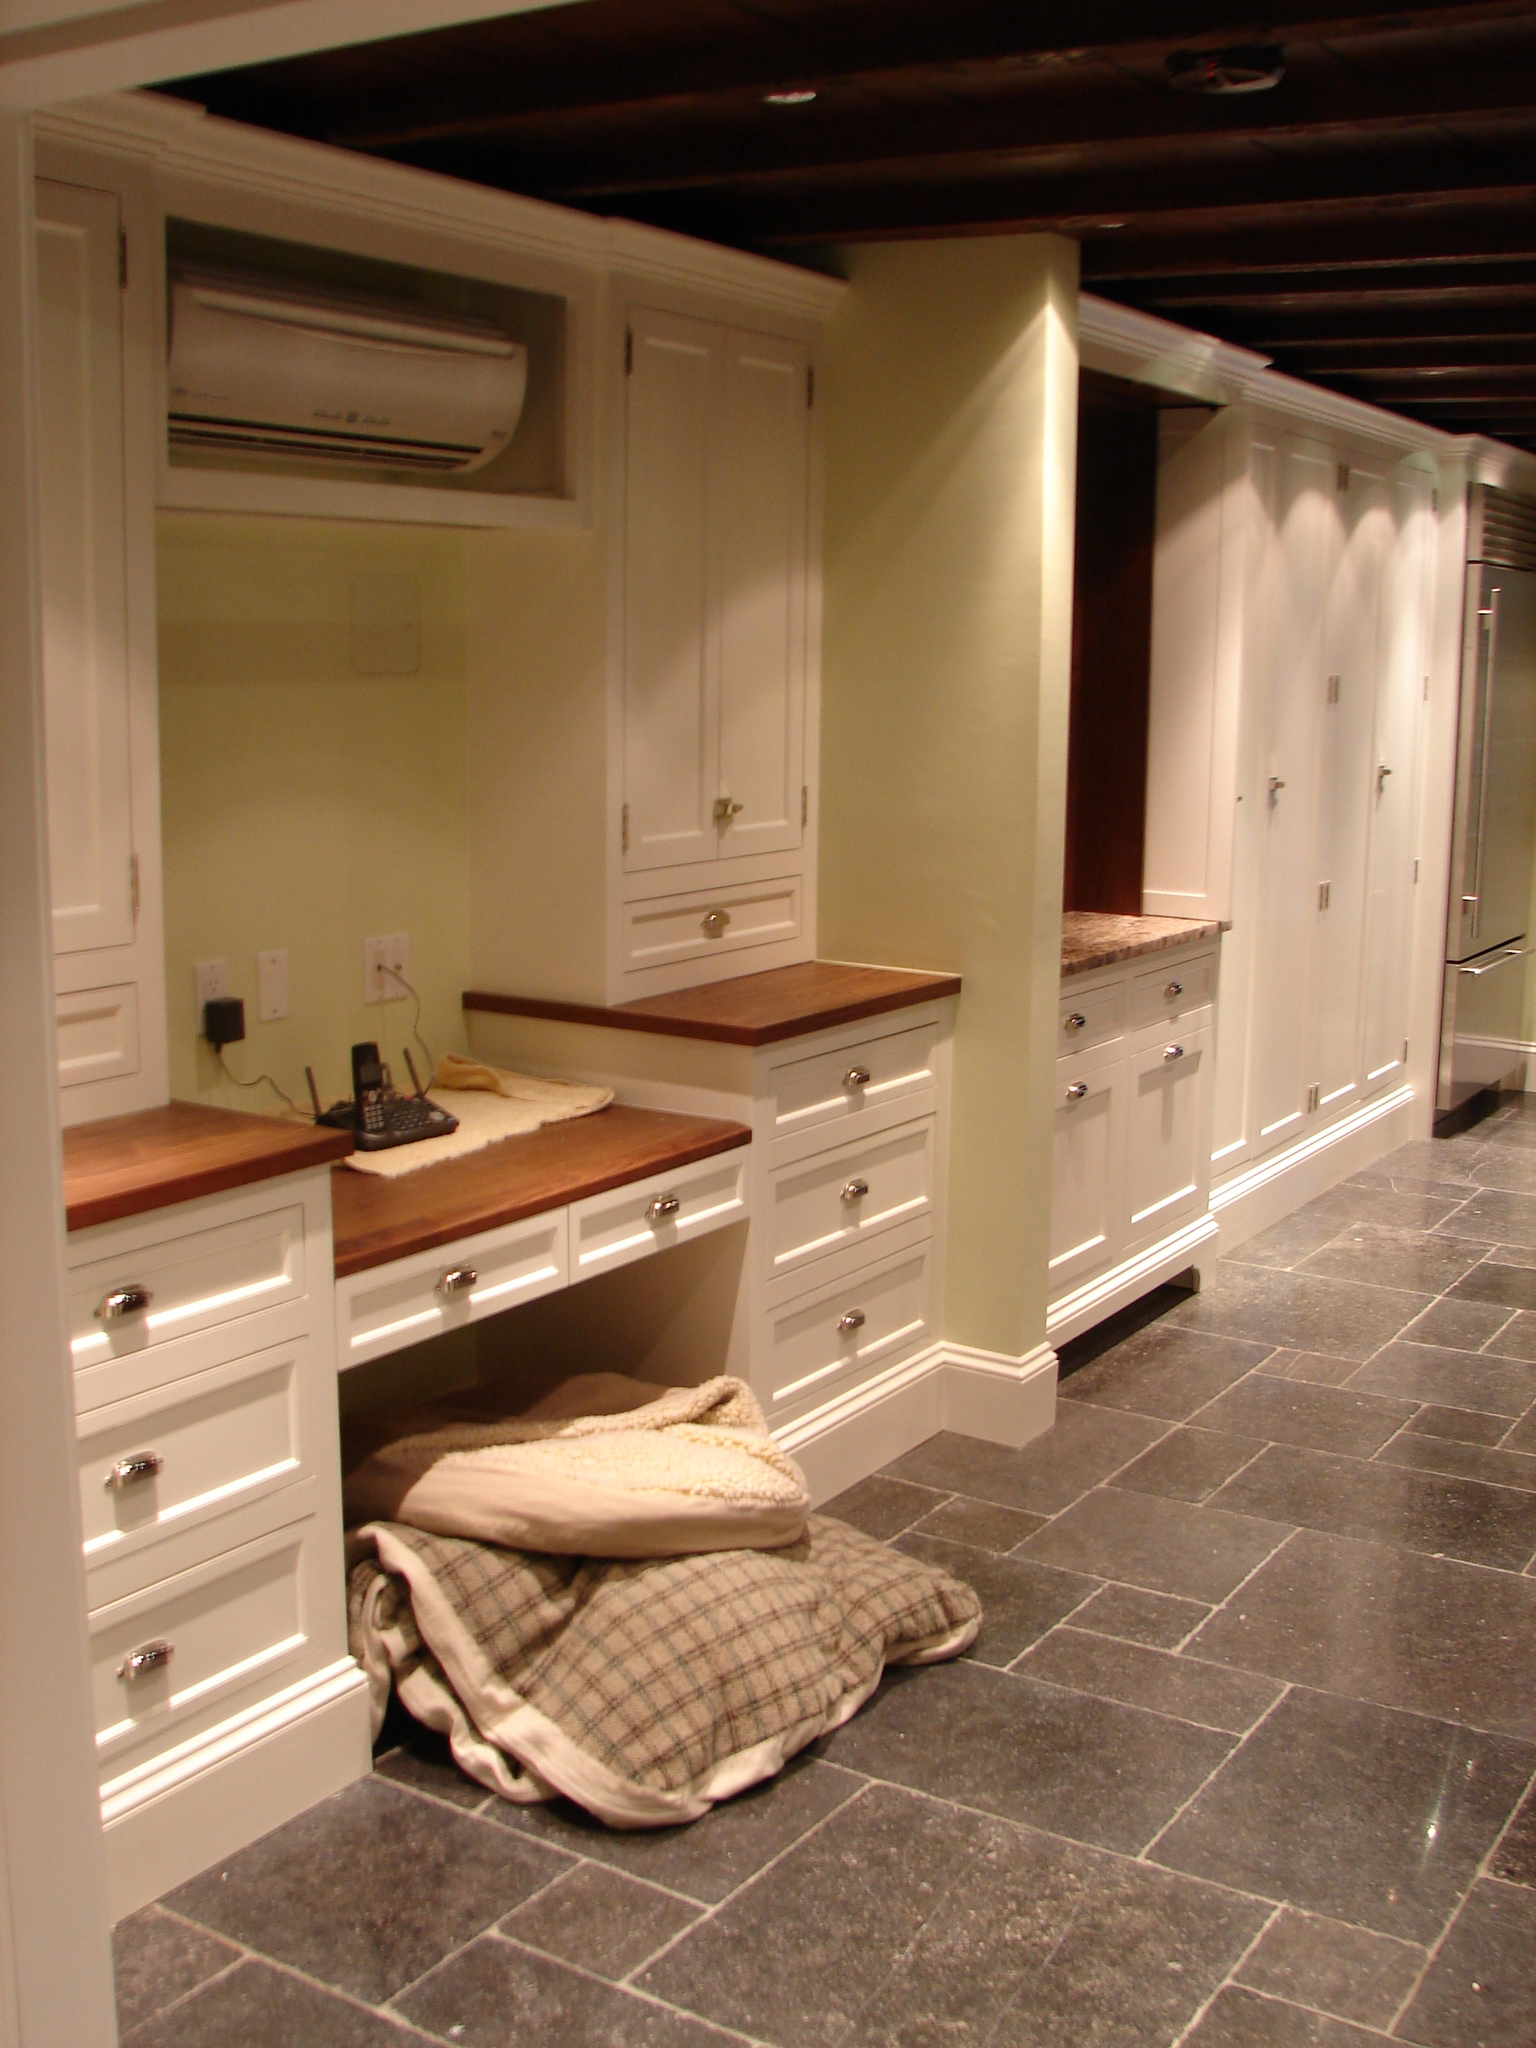 Antick Offers Period Inspired Cabinetry Designed And Built By  Master Craftsman David Wilson. Our Built Ins Are Crafted And Finished By  Hand With A Furniture ...